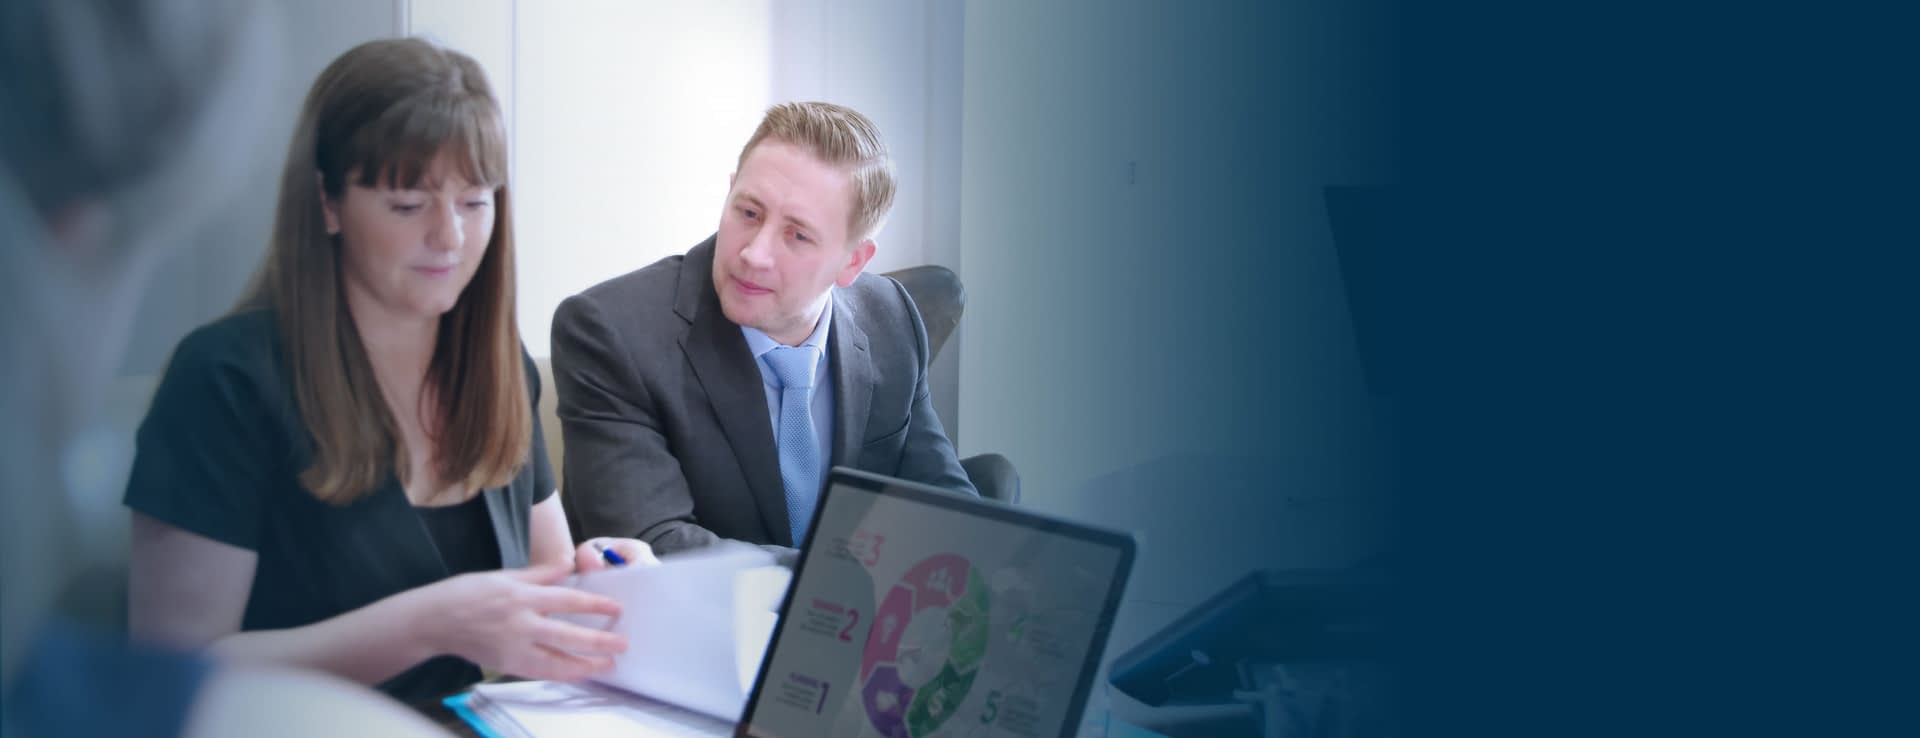 Cloud Accounting at HB Accountants in Hertfordshire